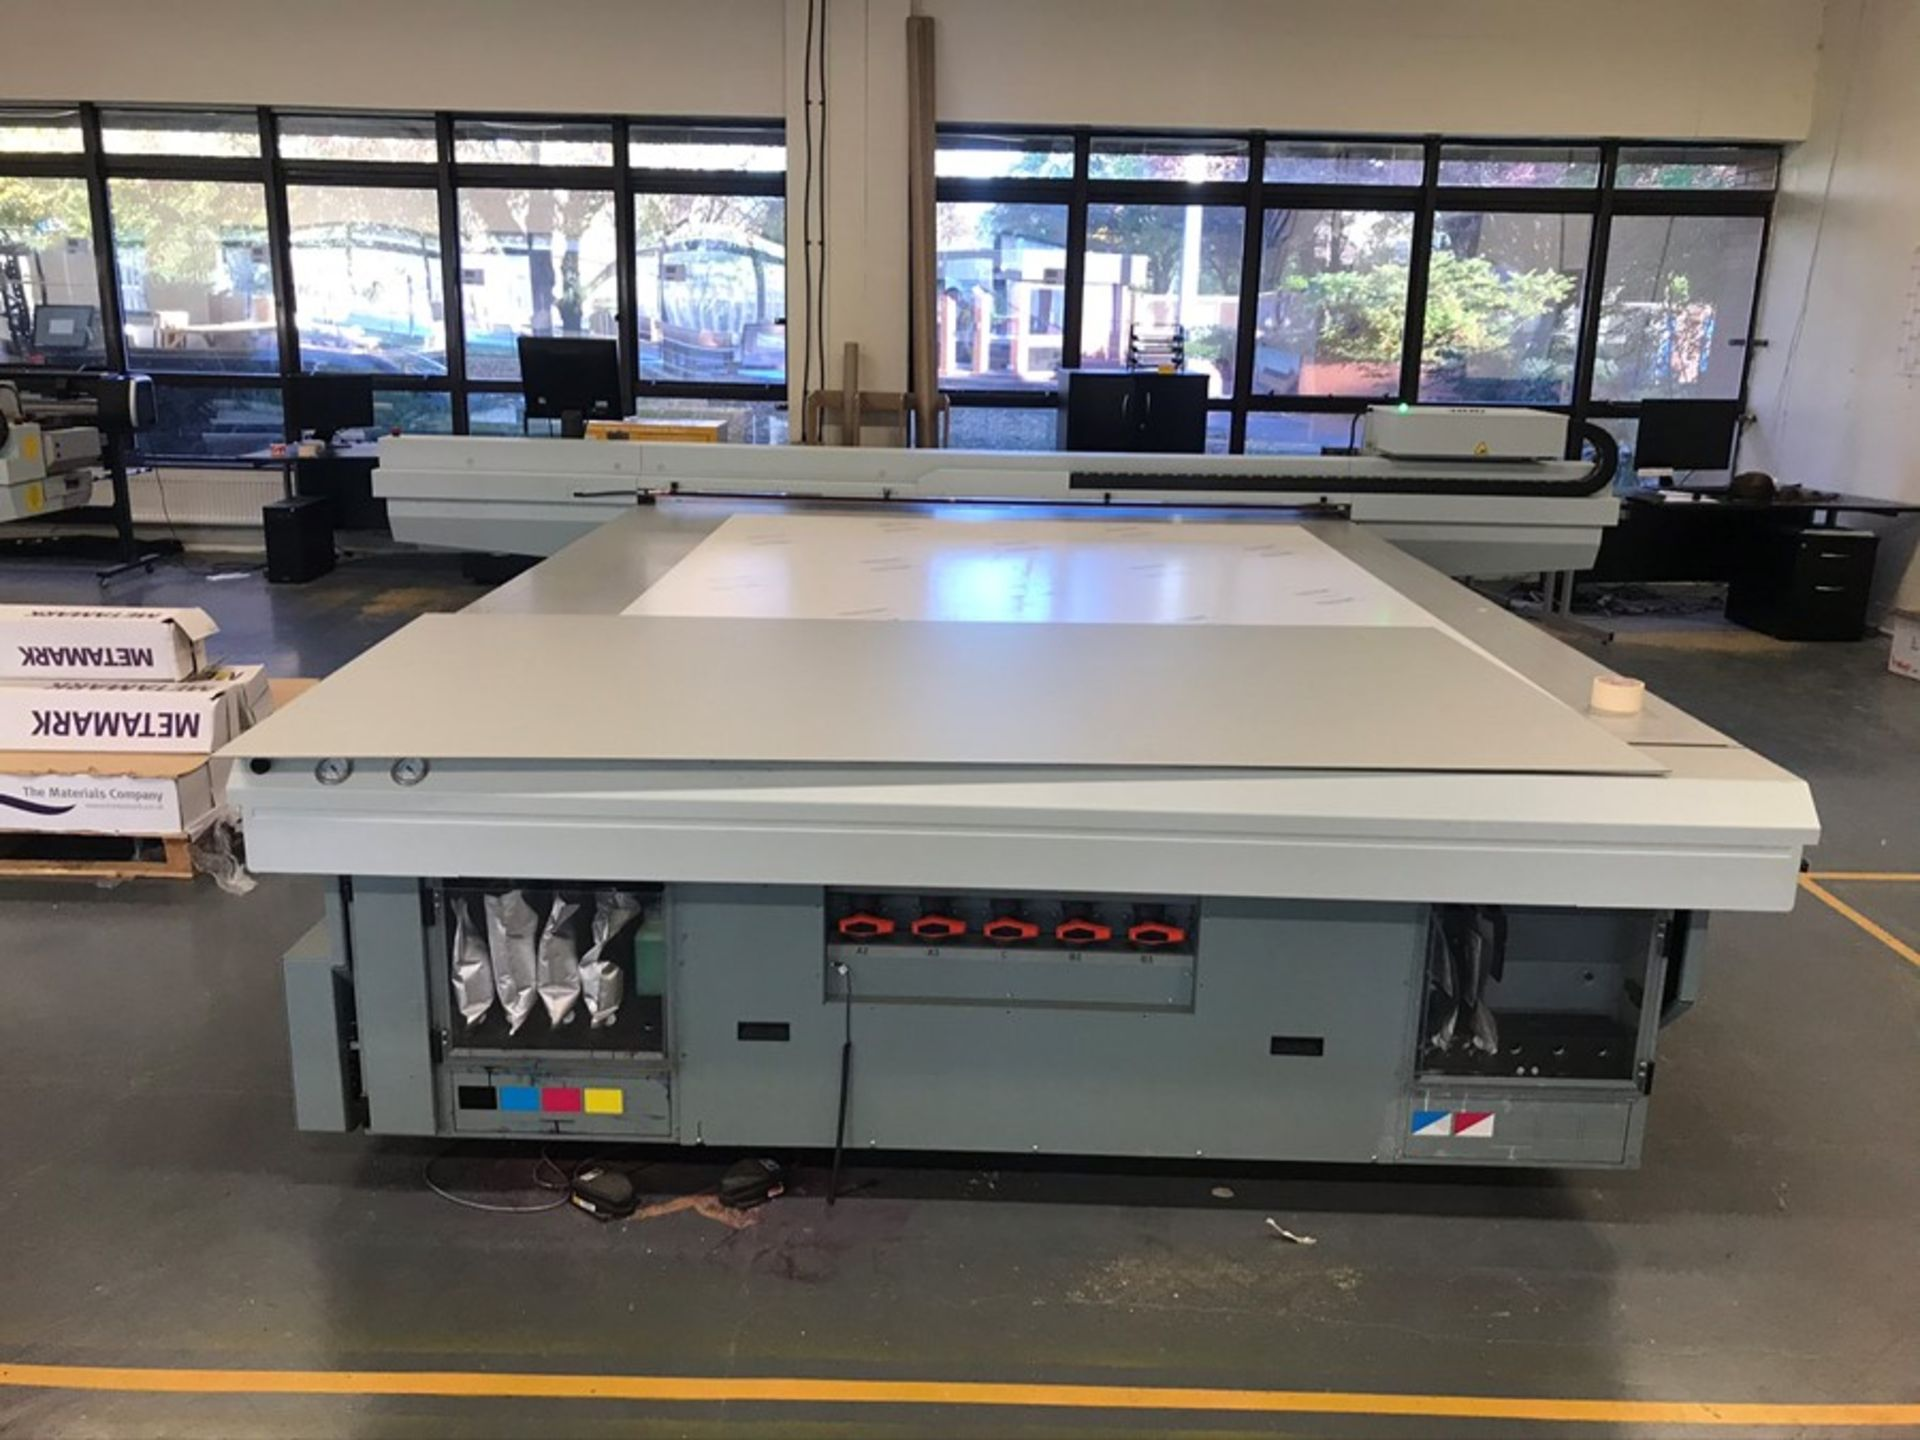 Oce Arizona 660 XT UV flatbed printer (2015) - Image 6 of 22